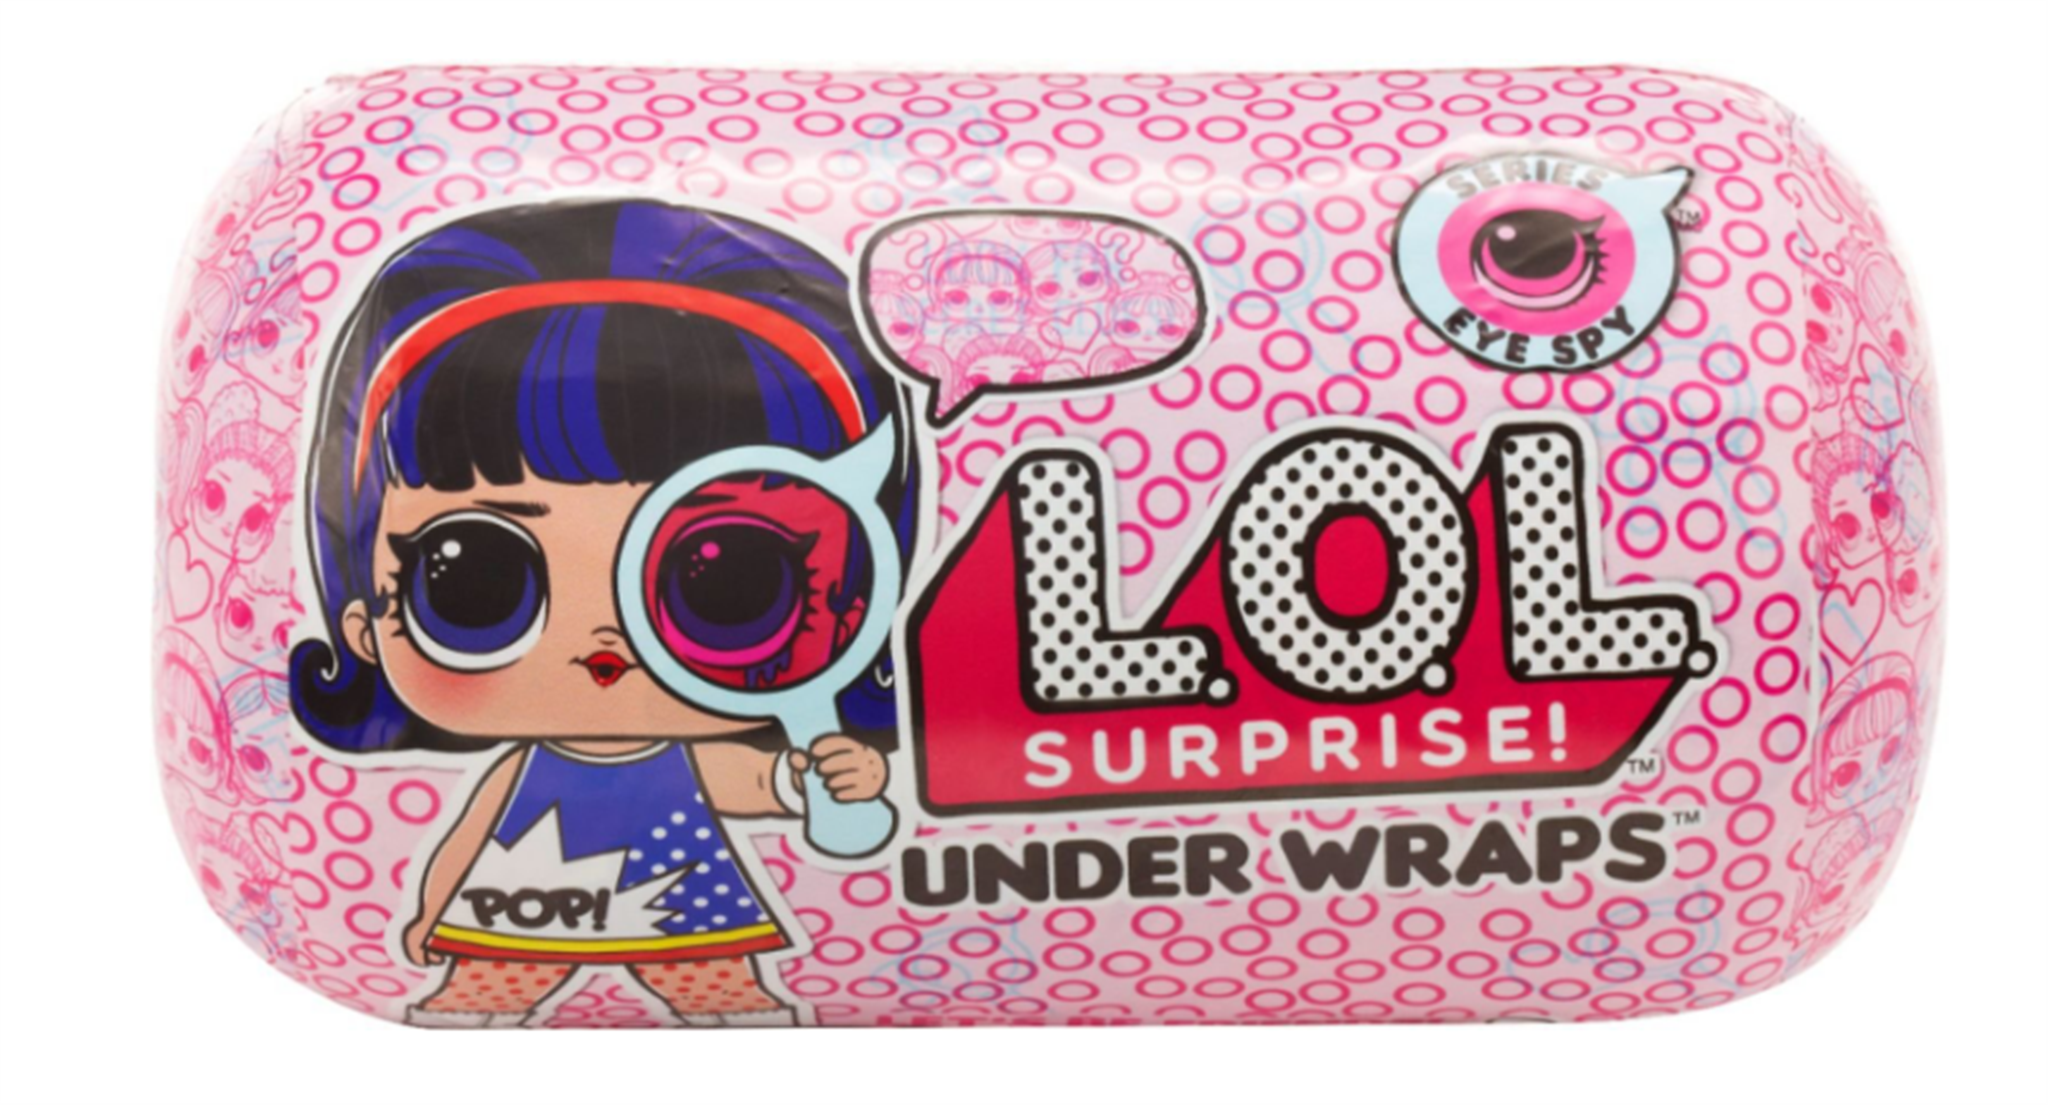 Bestbuy.com – L.O.L. Surprise! Underwraps Doll Blind Box Only $5.24, Reg $13.99 + Free Shipping!